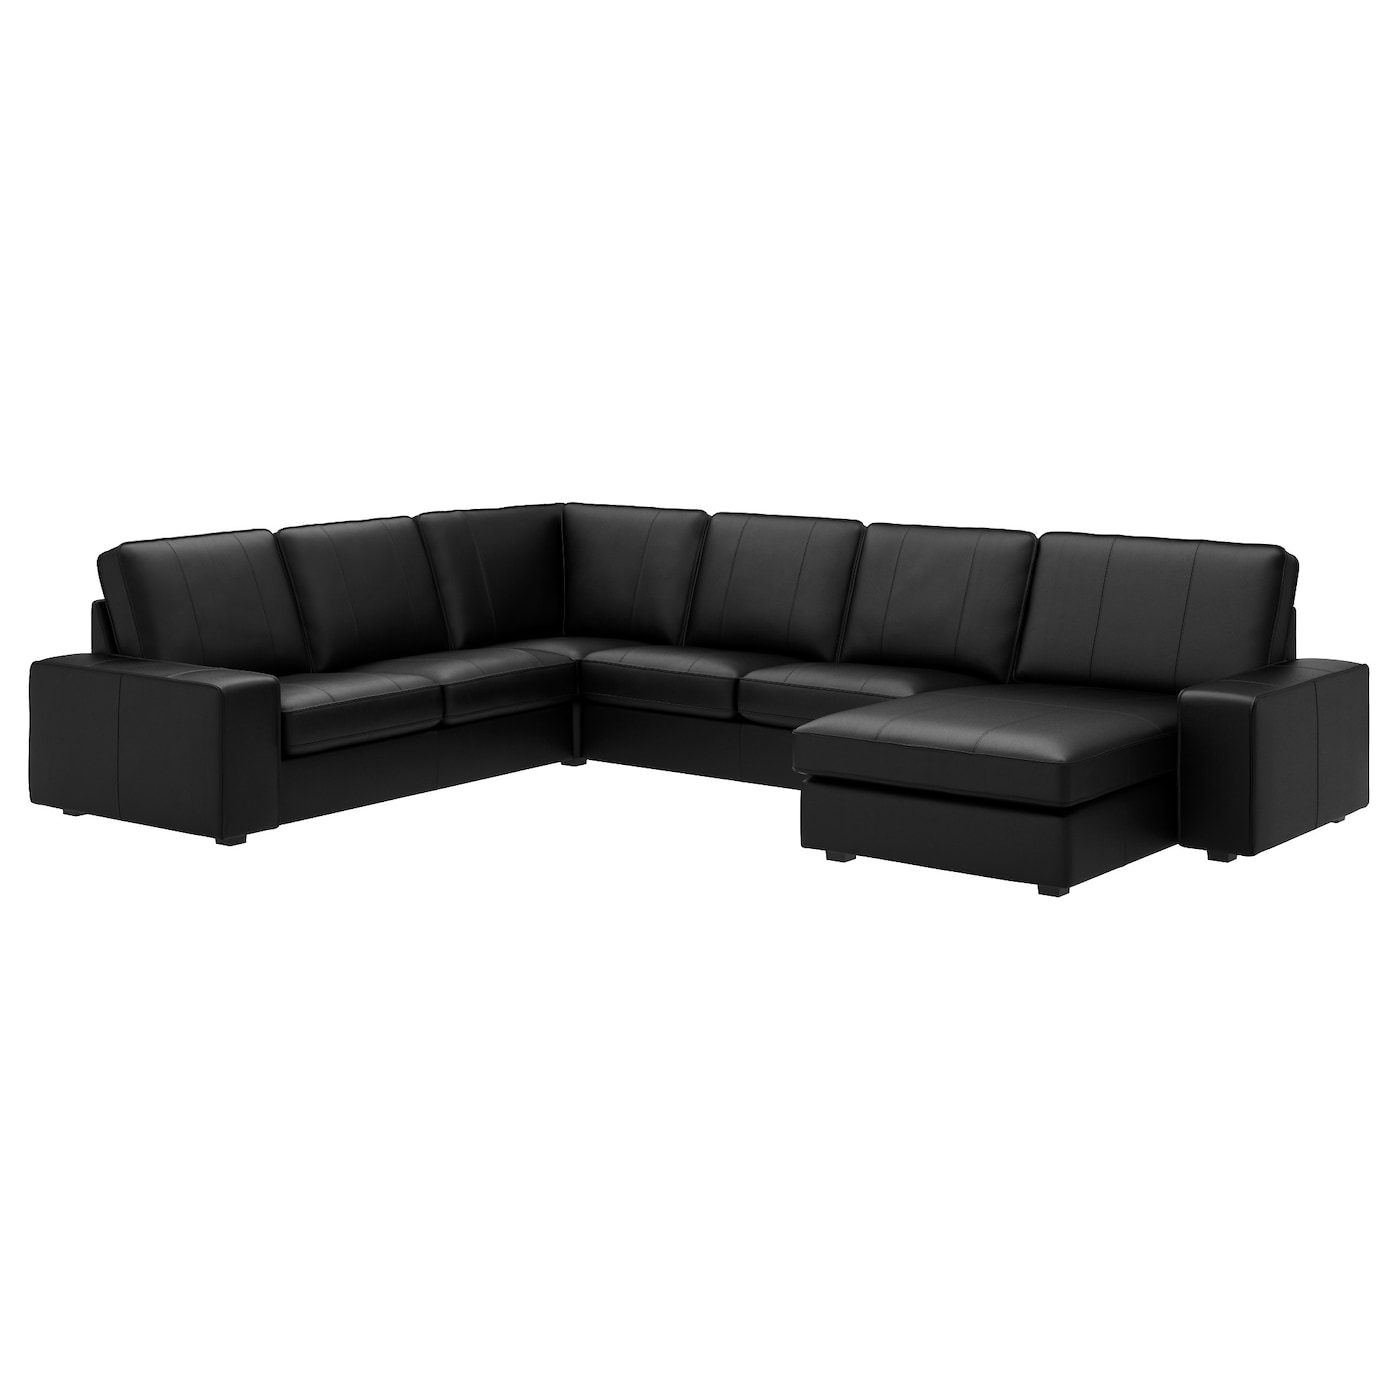 Kivik Corner Sofa 5 Seat With Chaise Longue Grann Bomstad